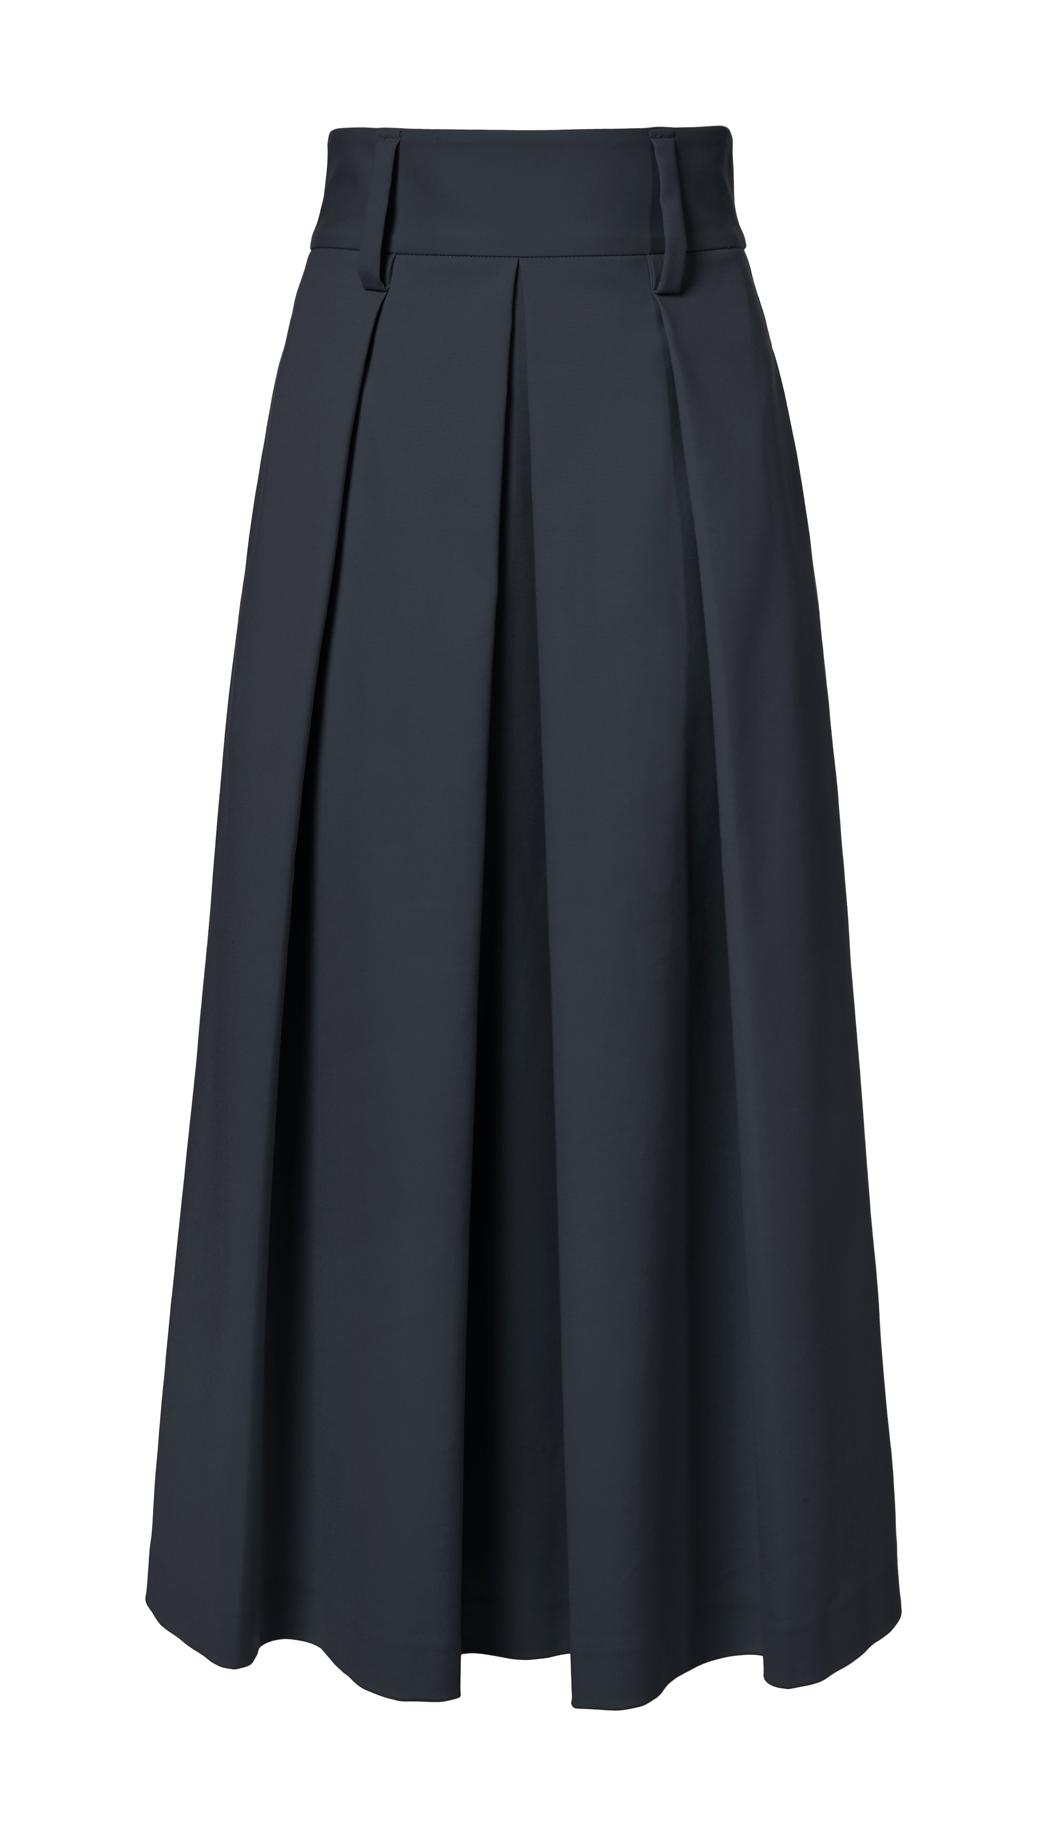 tibi agathe high waisted skirt in black lyst